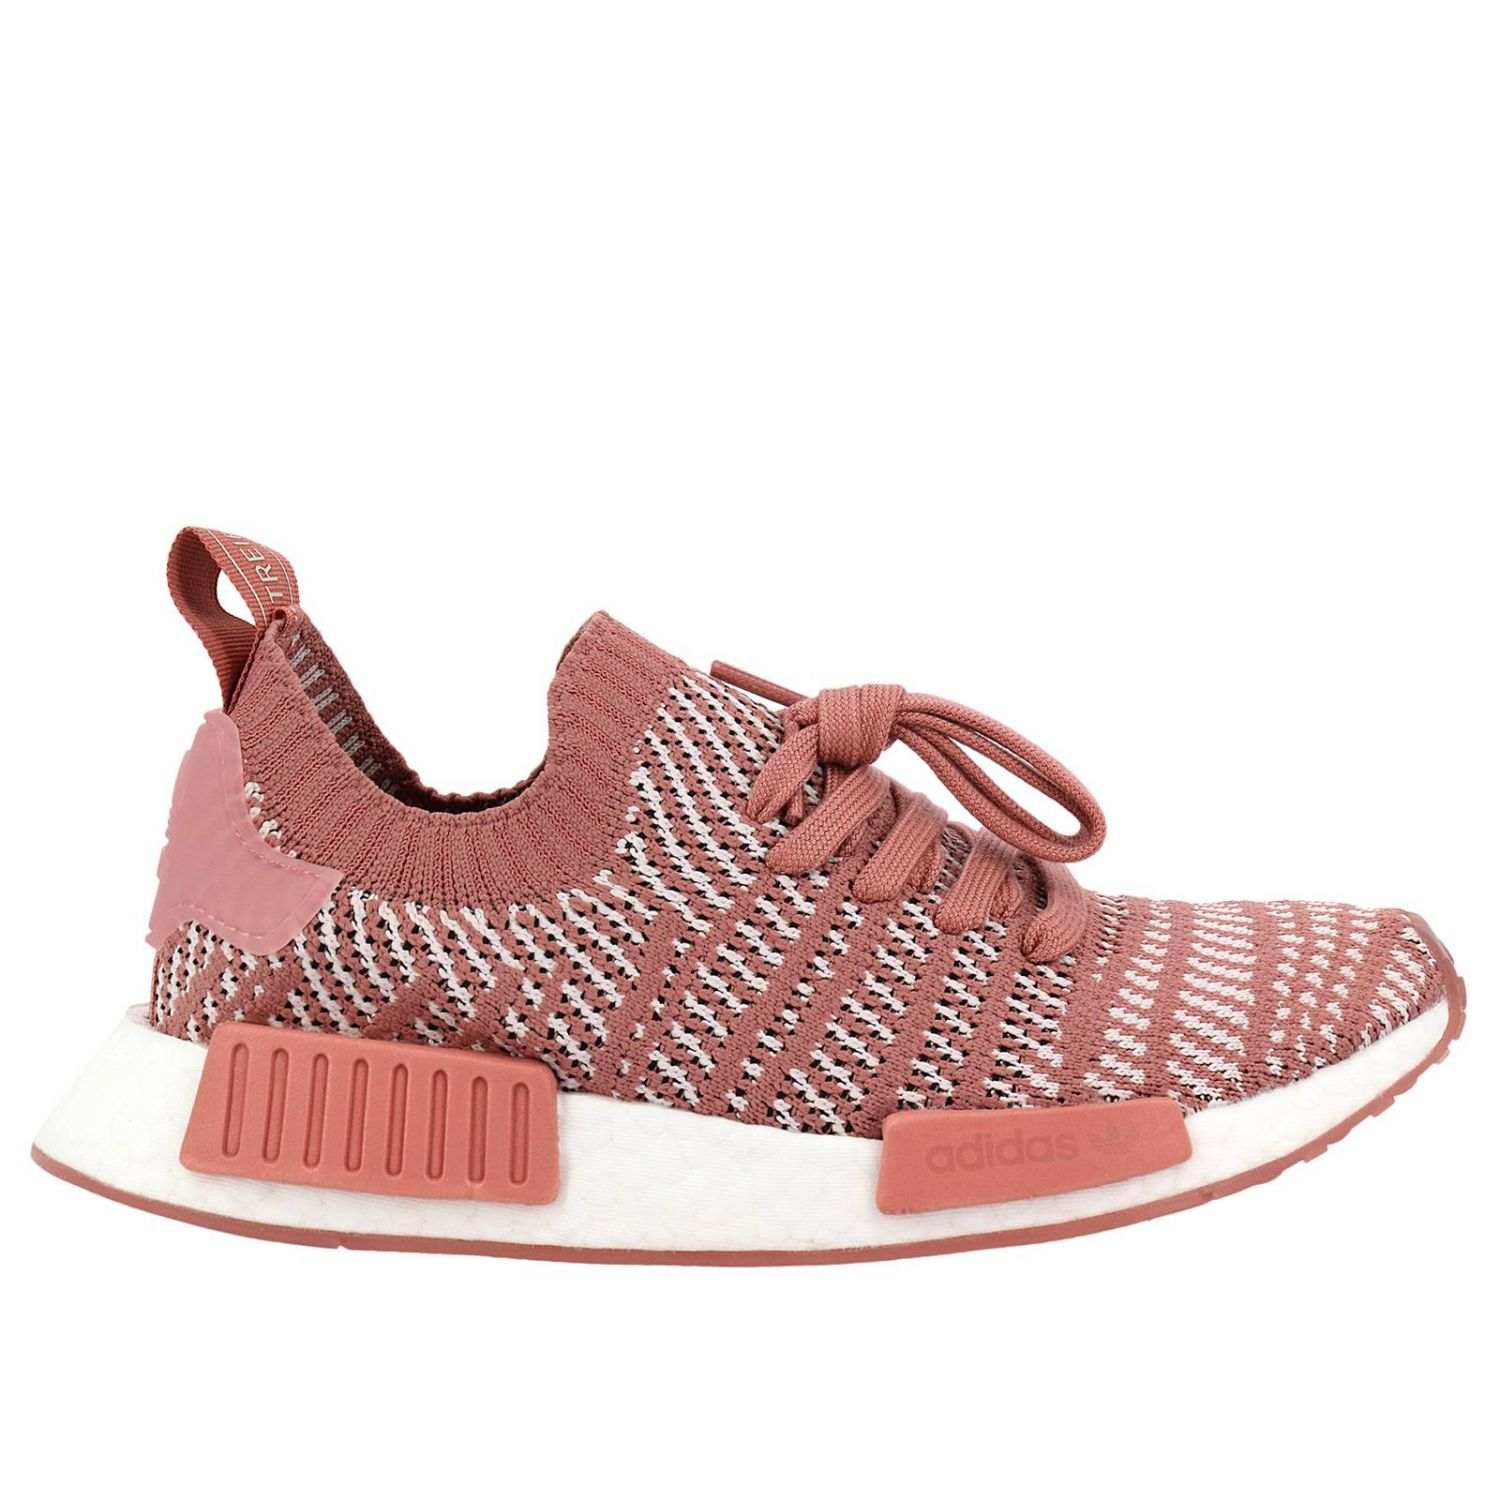 Sneakers Adidas Originals Nmd-r1 Stlt Primeknit Women's Sneakers With Striped Effect 8311641